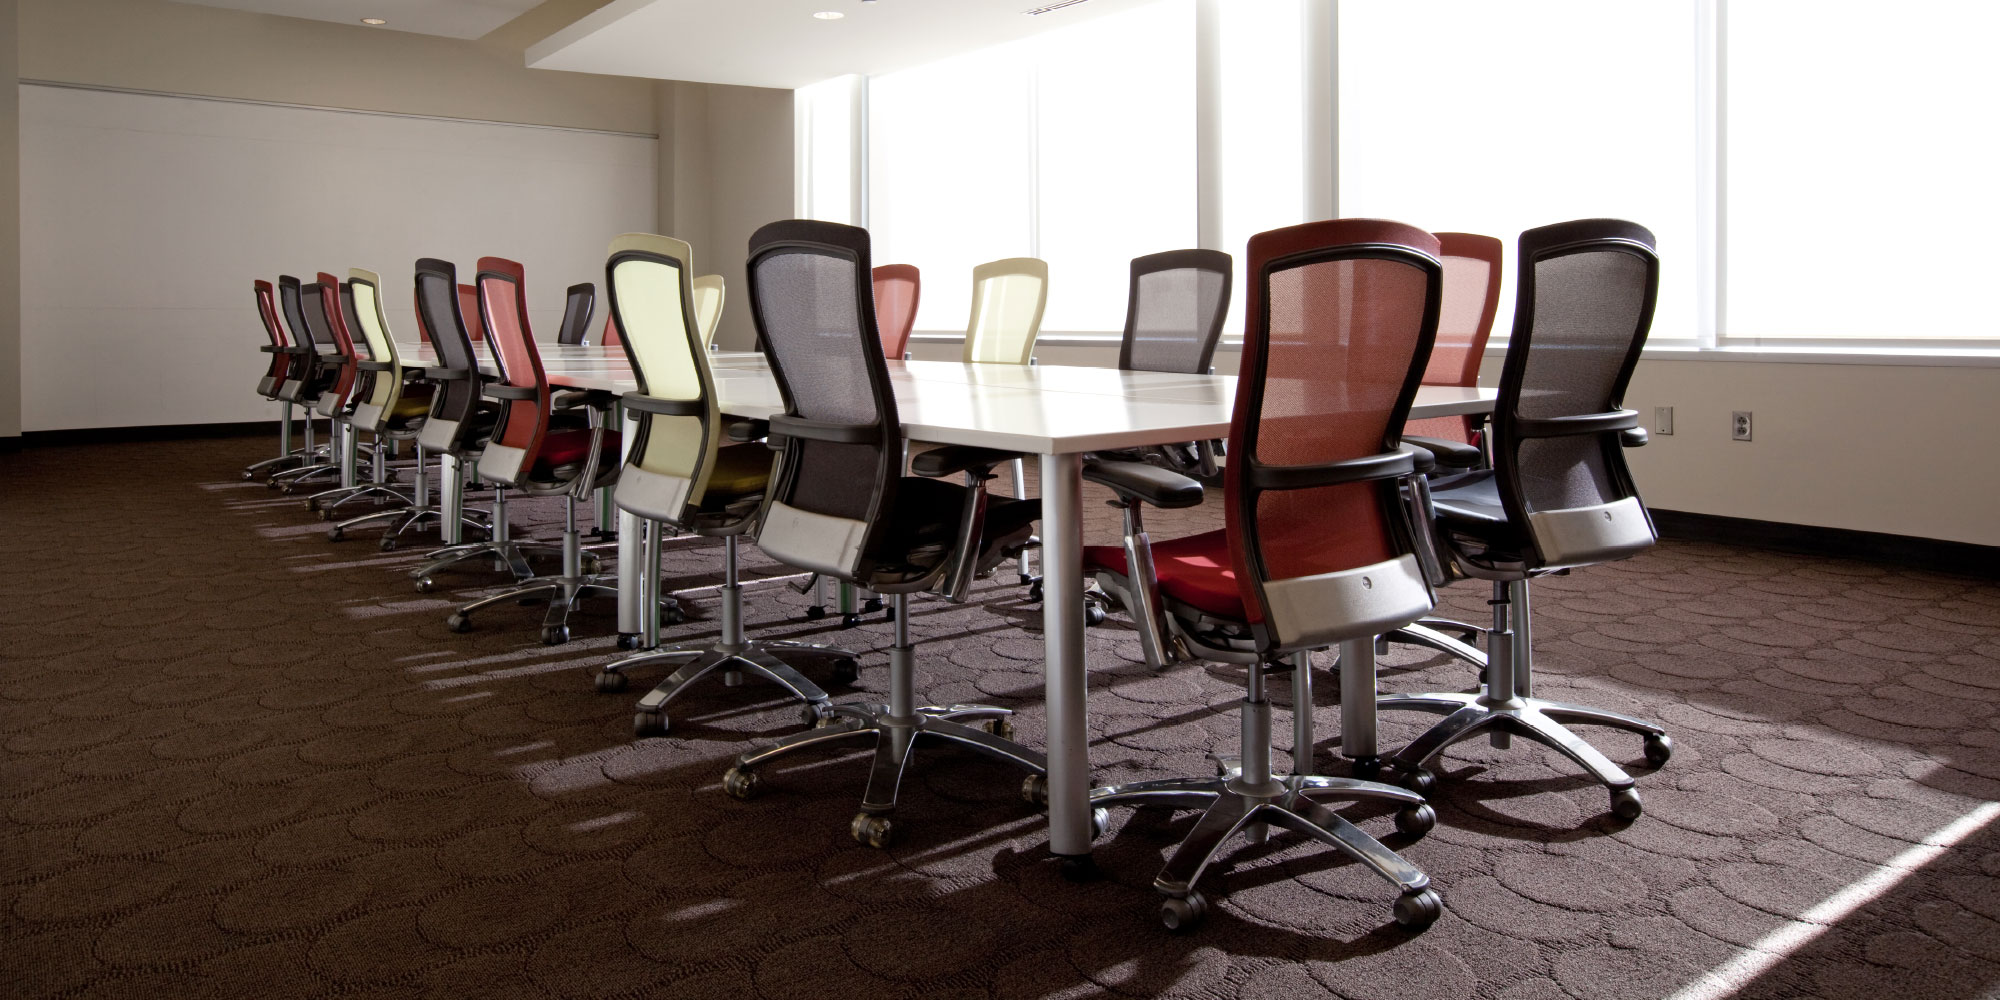 Used conference chairs and conference table